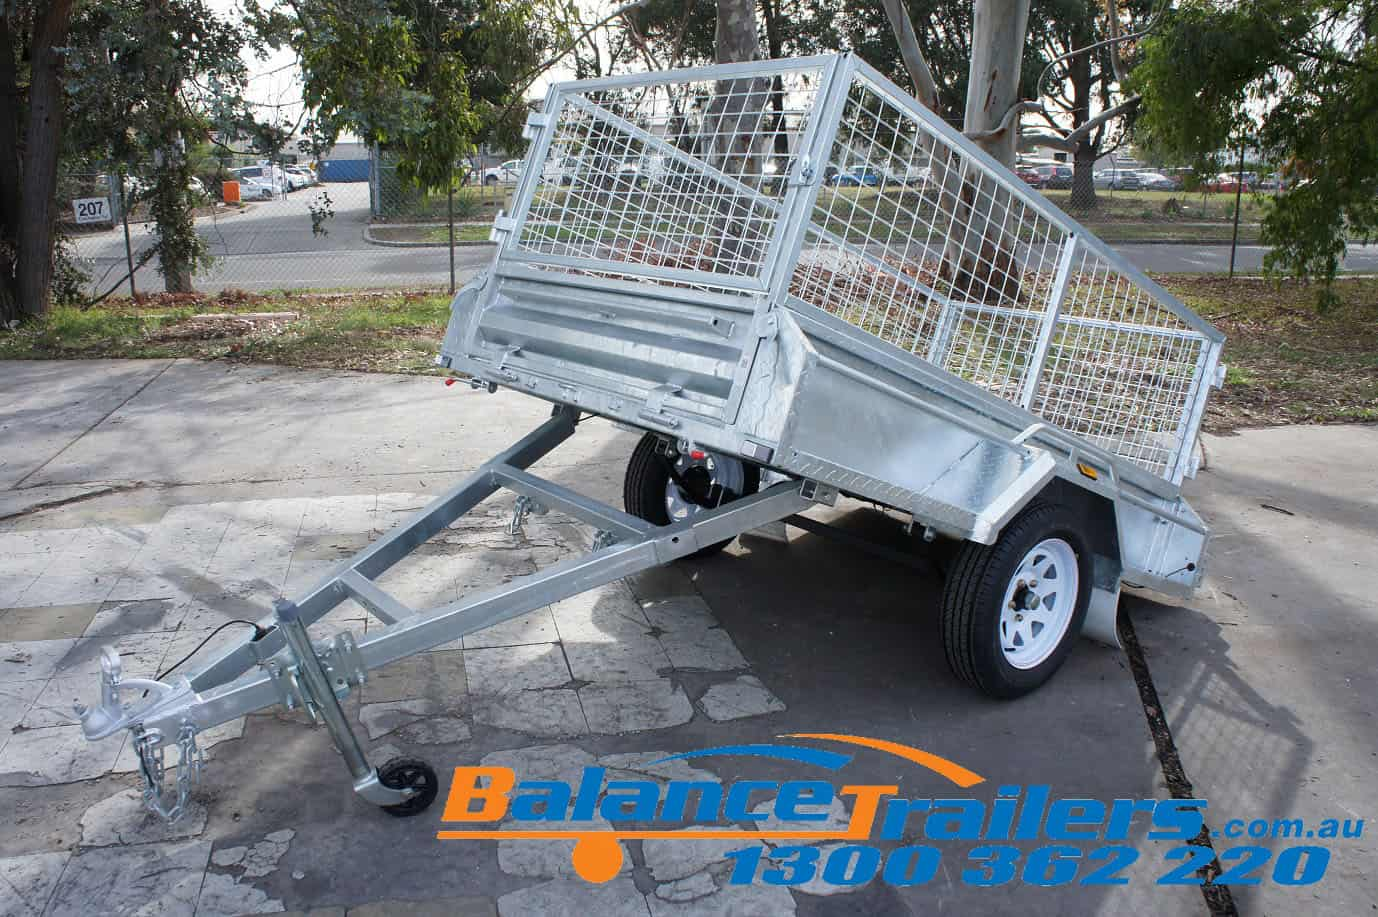 BT74FWT Single Axle Trailer Image 12